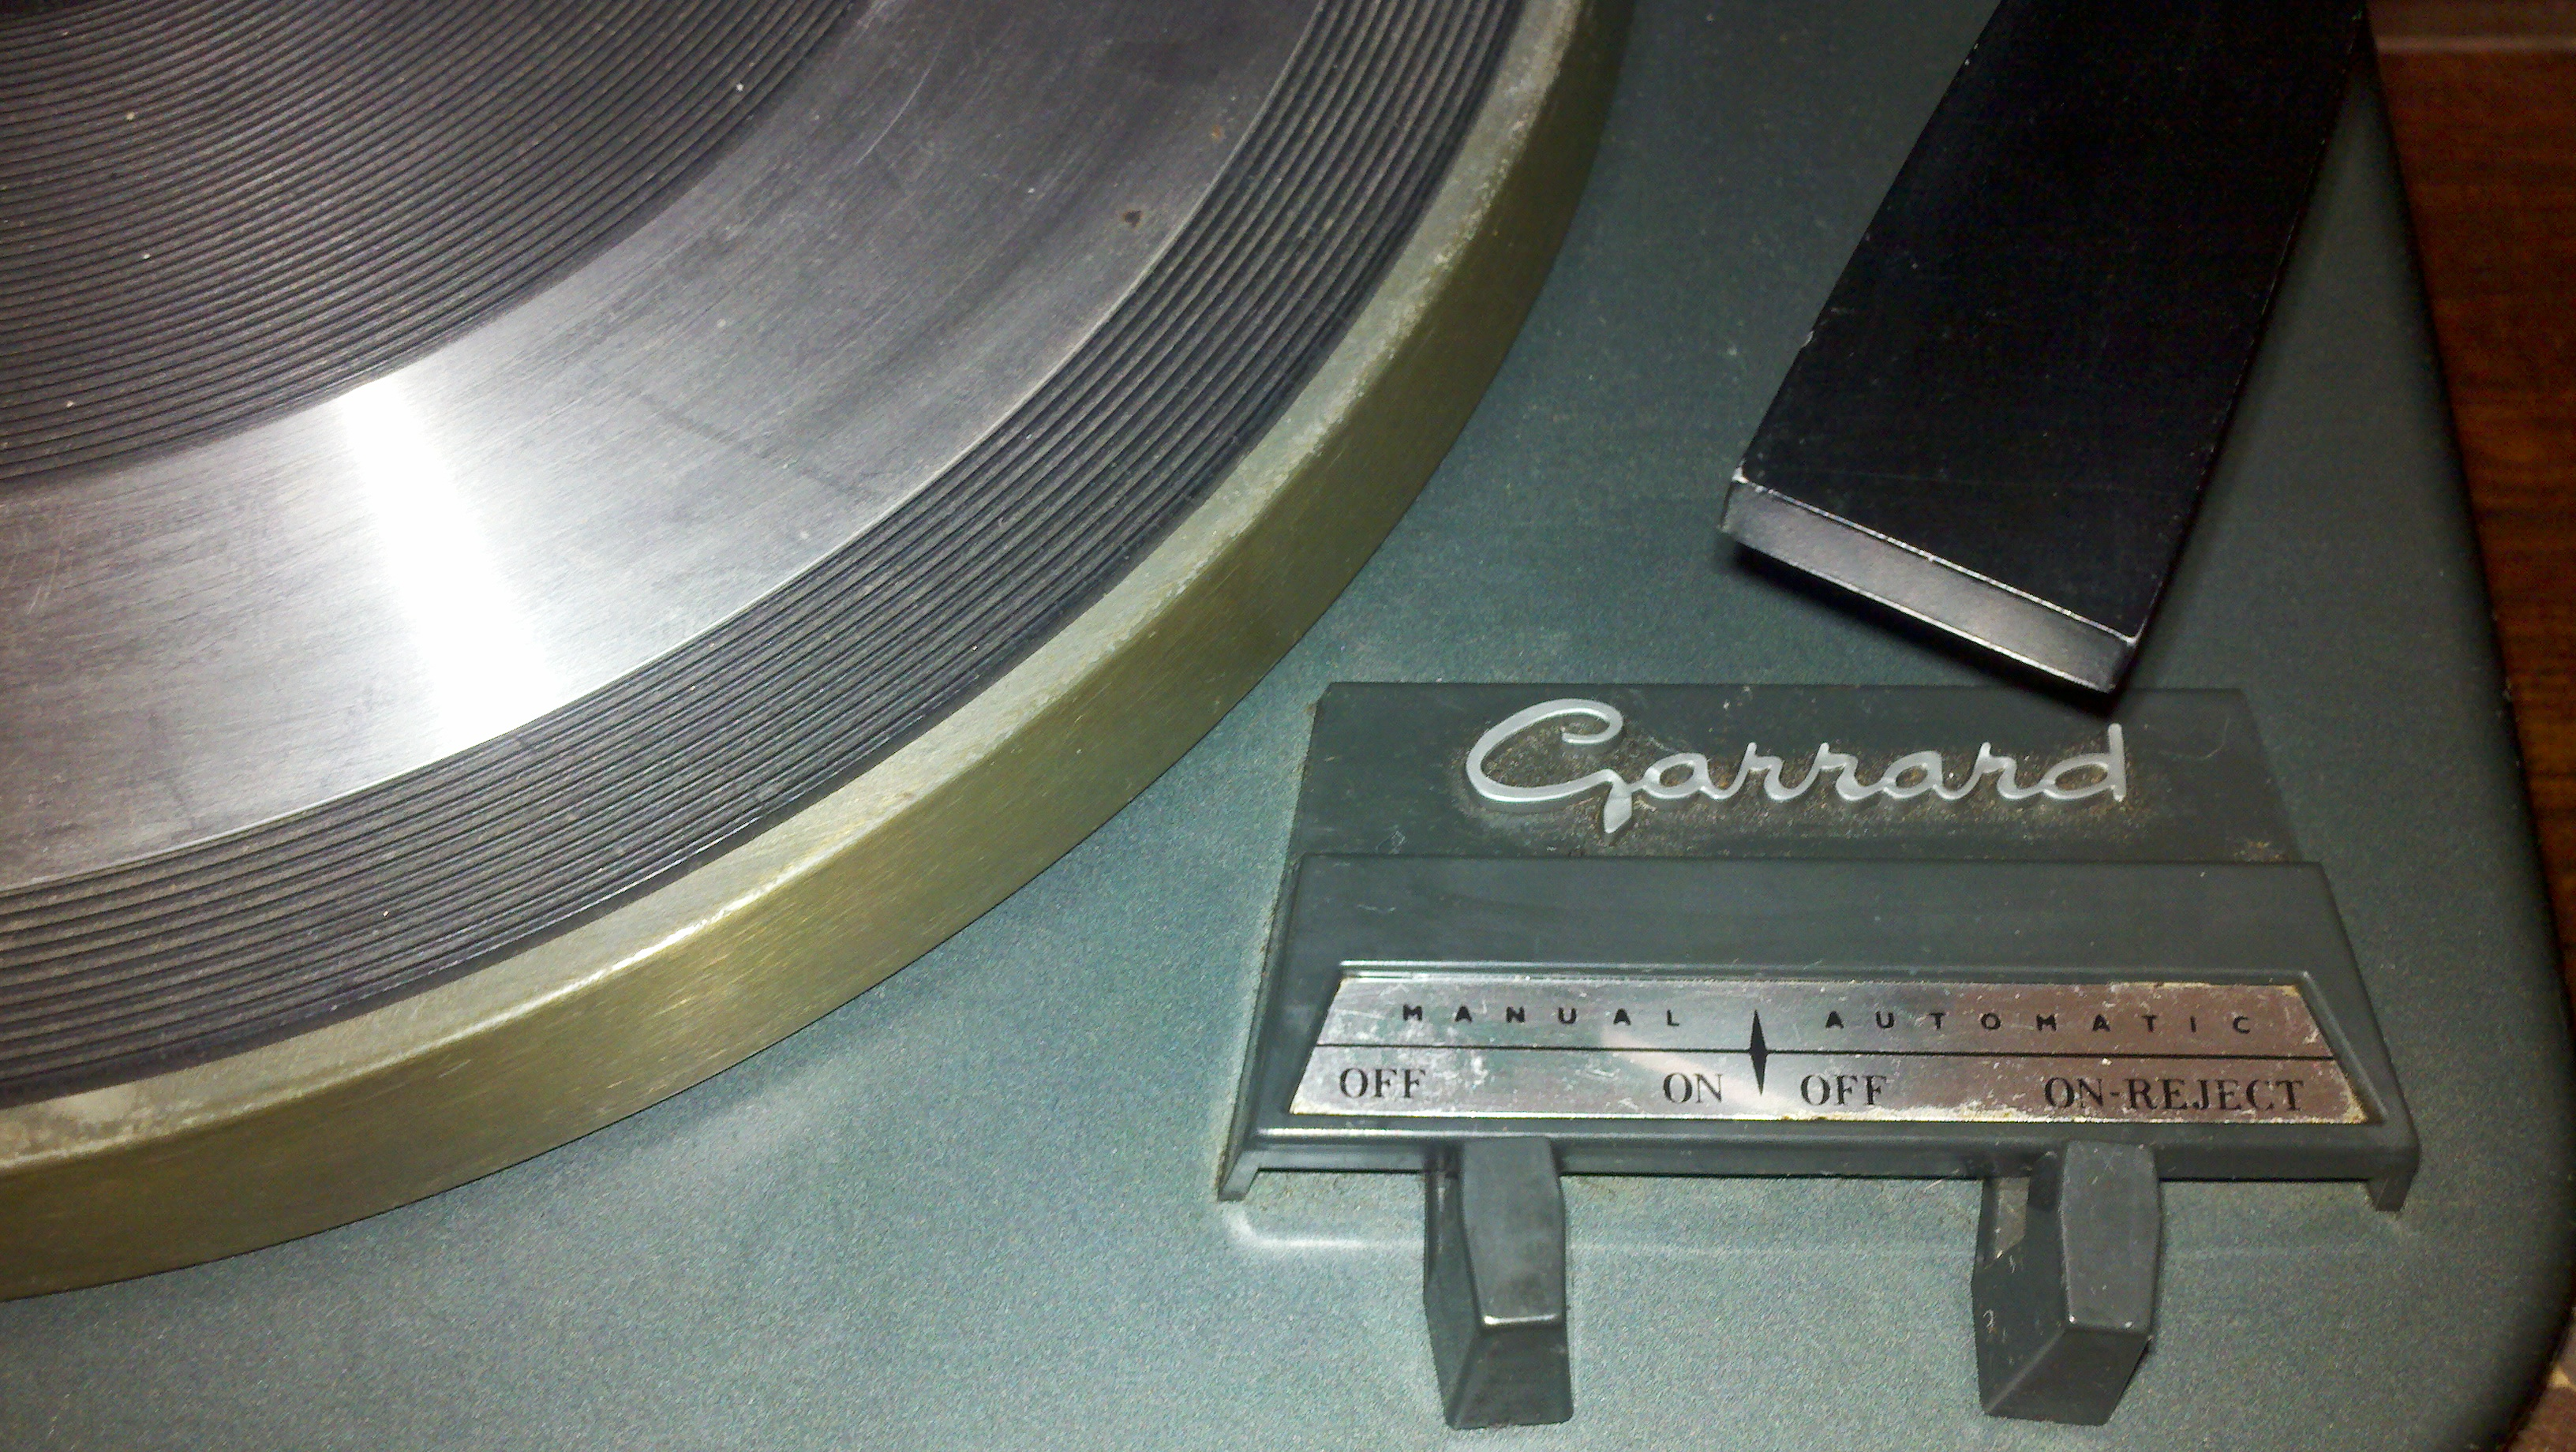 Many record turntables featured a semi-automatic reject mechanism